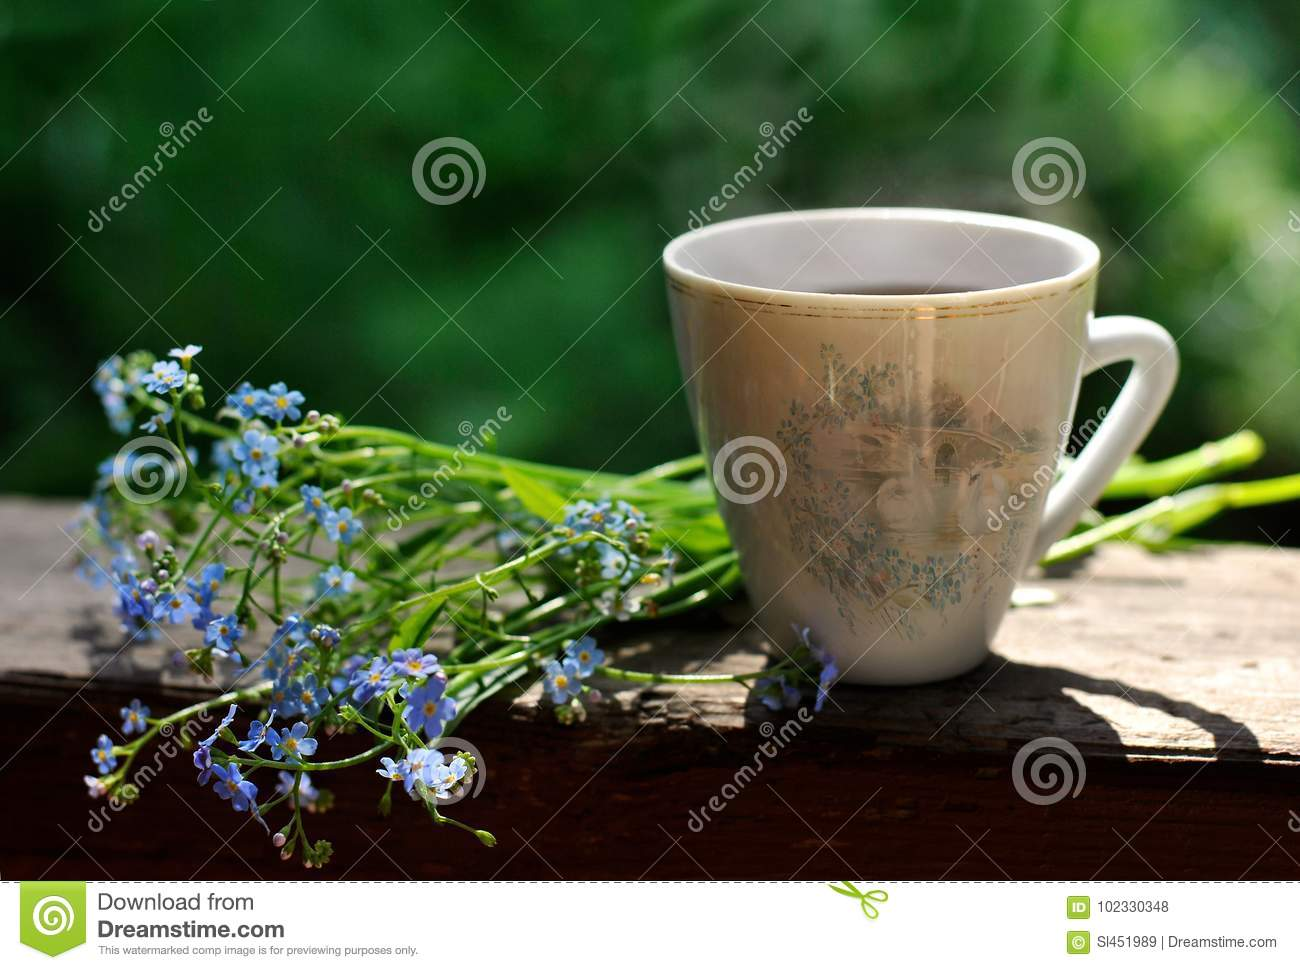 A Cup Of Coffee And Blue Flowers Near It On A Green Garden